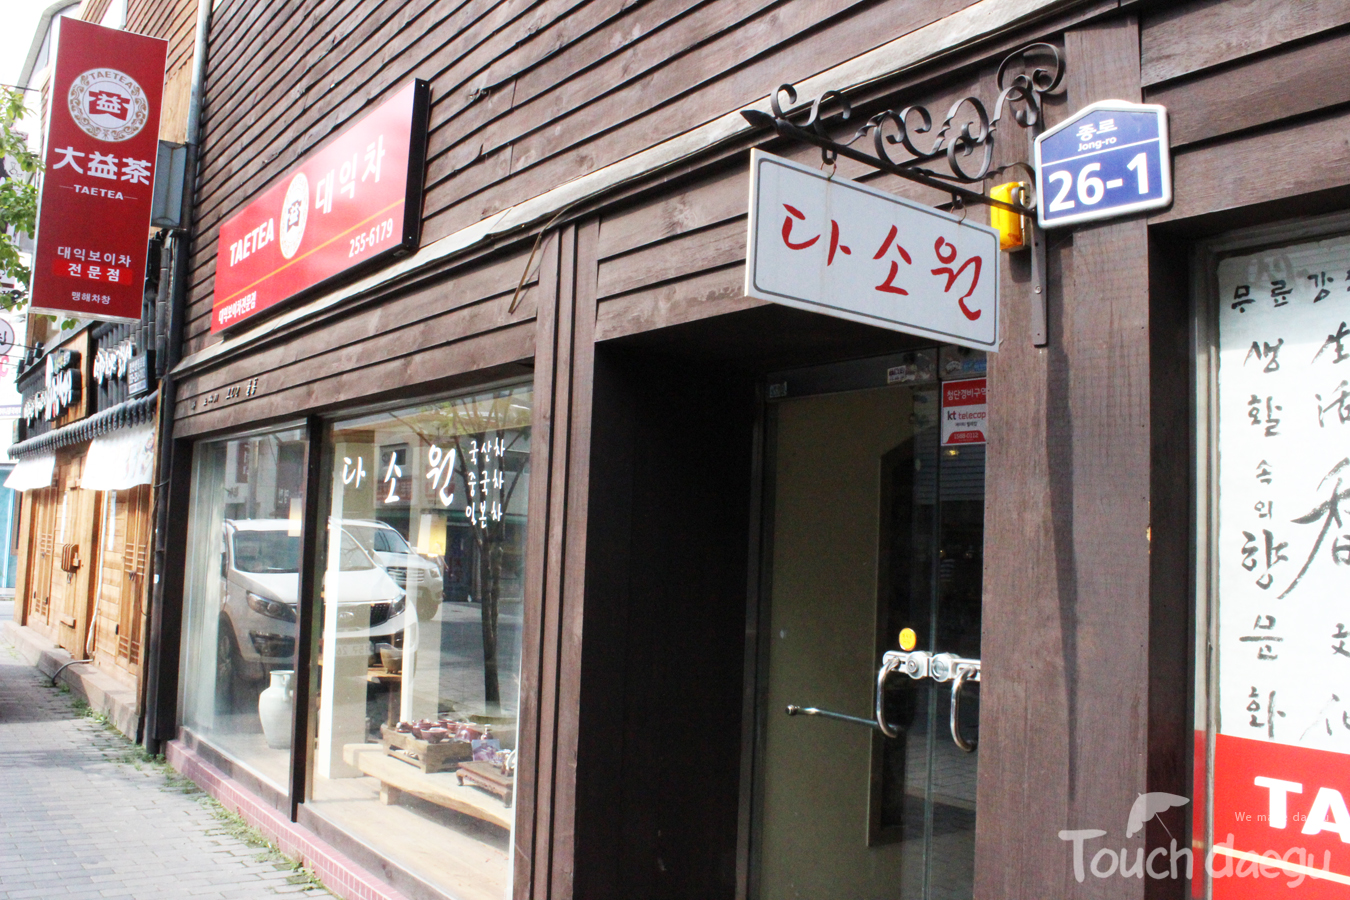 The third shop's name is Da So Won